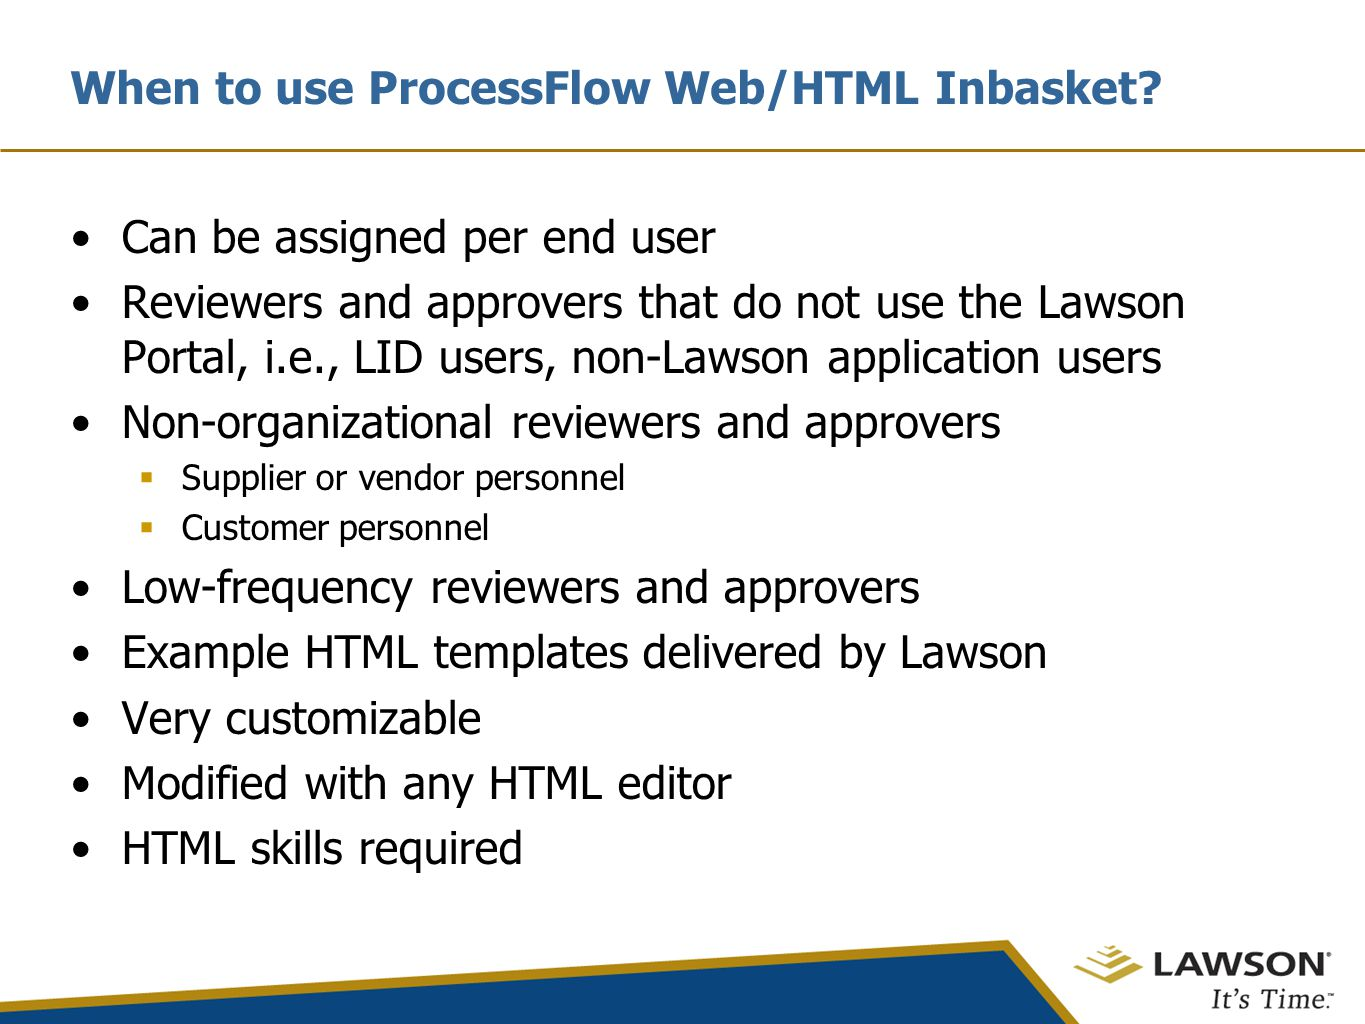 When to use ProcessFlow Web/HTML Inbasket.